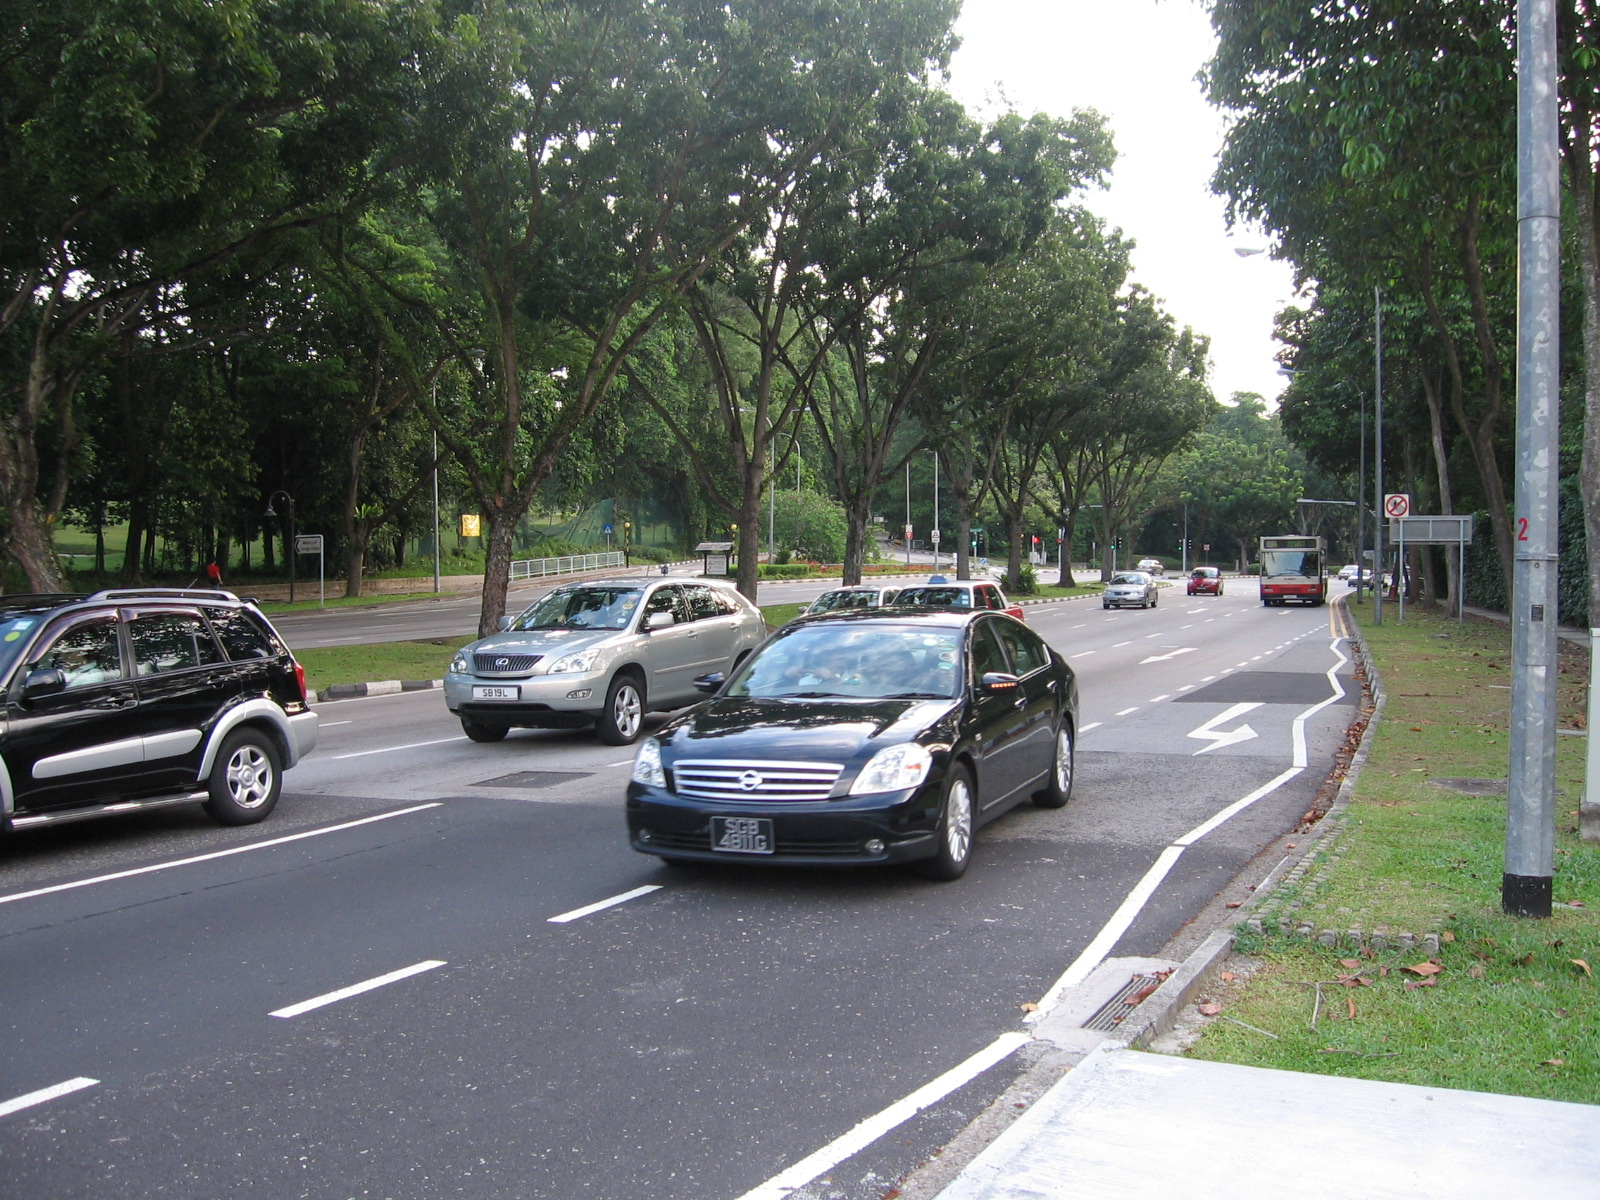 Certificate of Entitlement (COE) premiums for small and large cars in Singapore fell to the lowest in over eight years in the latest bidding exercise. Photo courtesy: Wikimedia